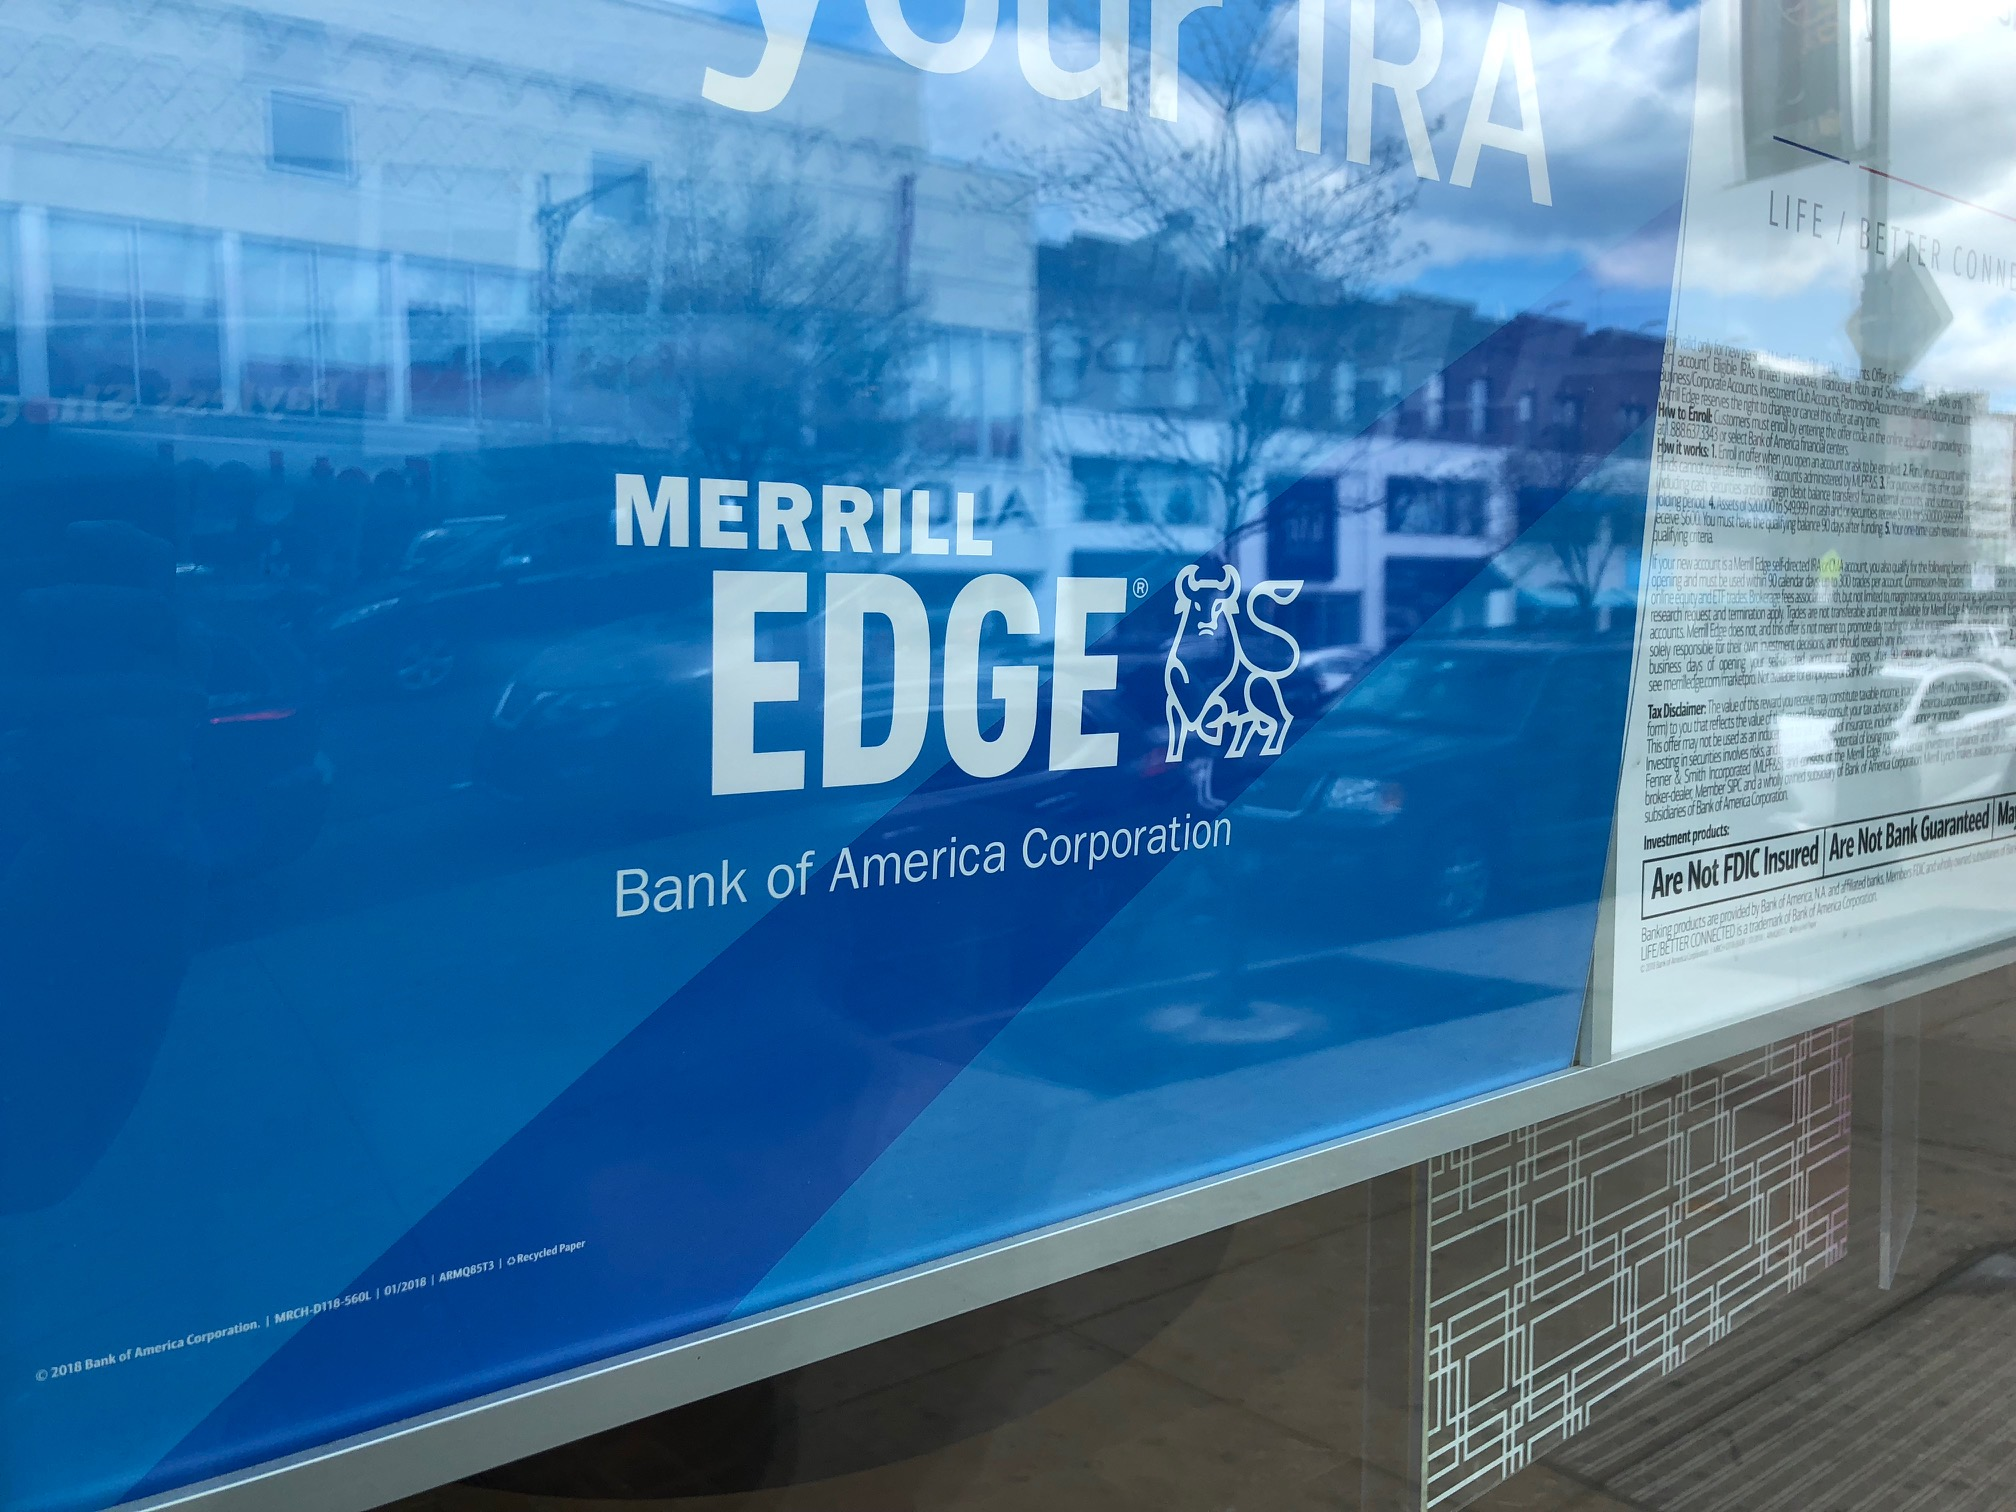 Merrill Edge Guided Investing 2019 Review: Is it Good?